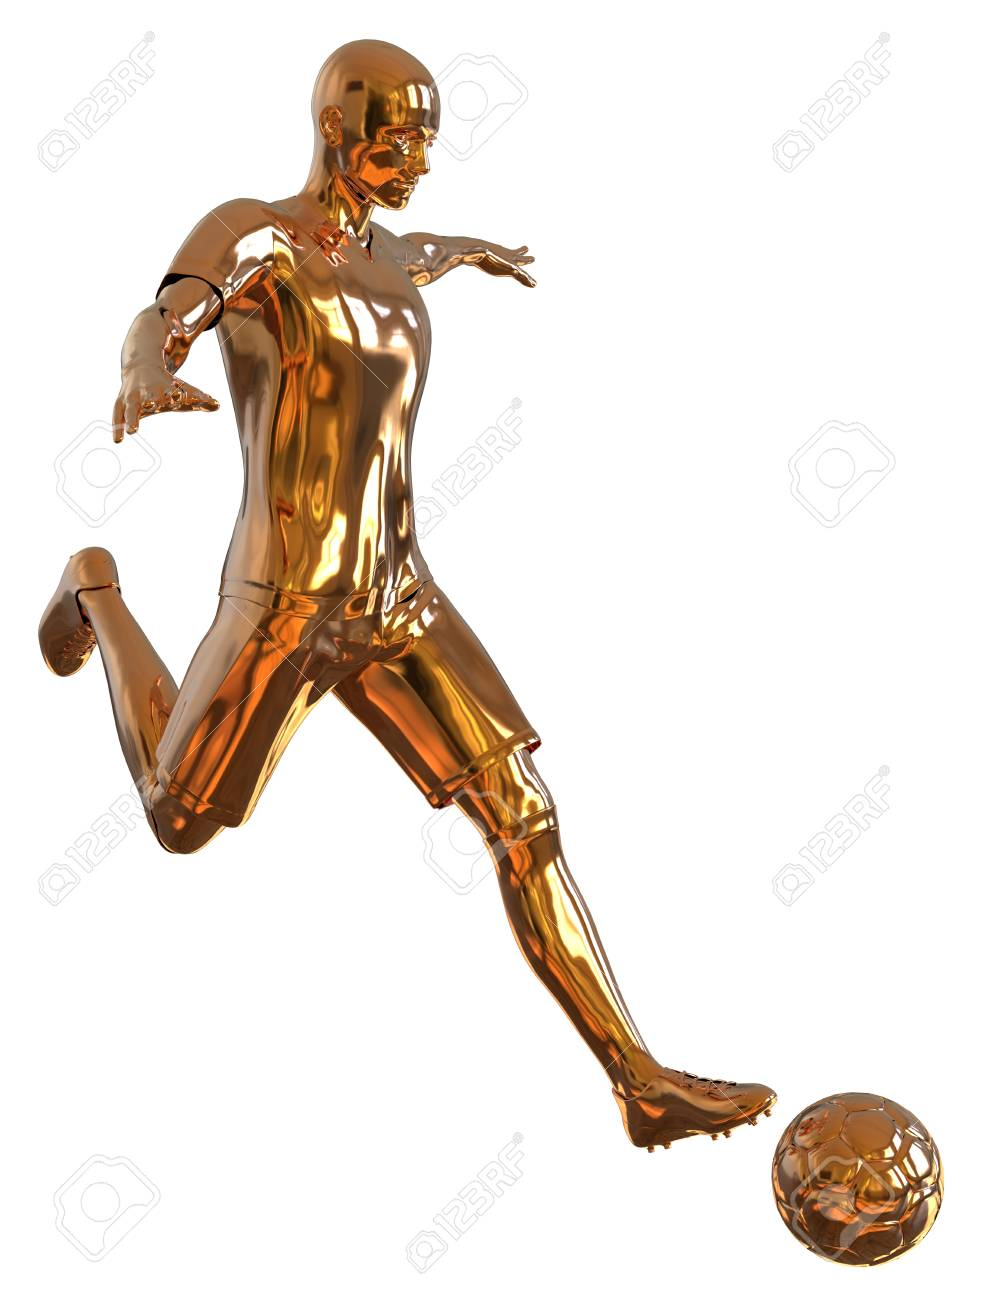 172476f3c4 3D illustration soccer football player of gold isolated on white Stock  Illustration - 98956027